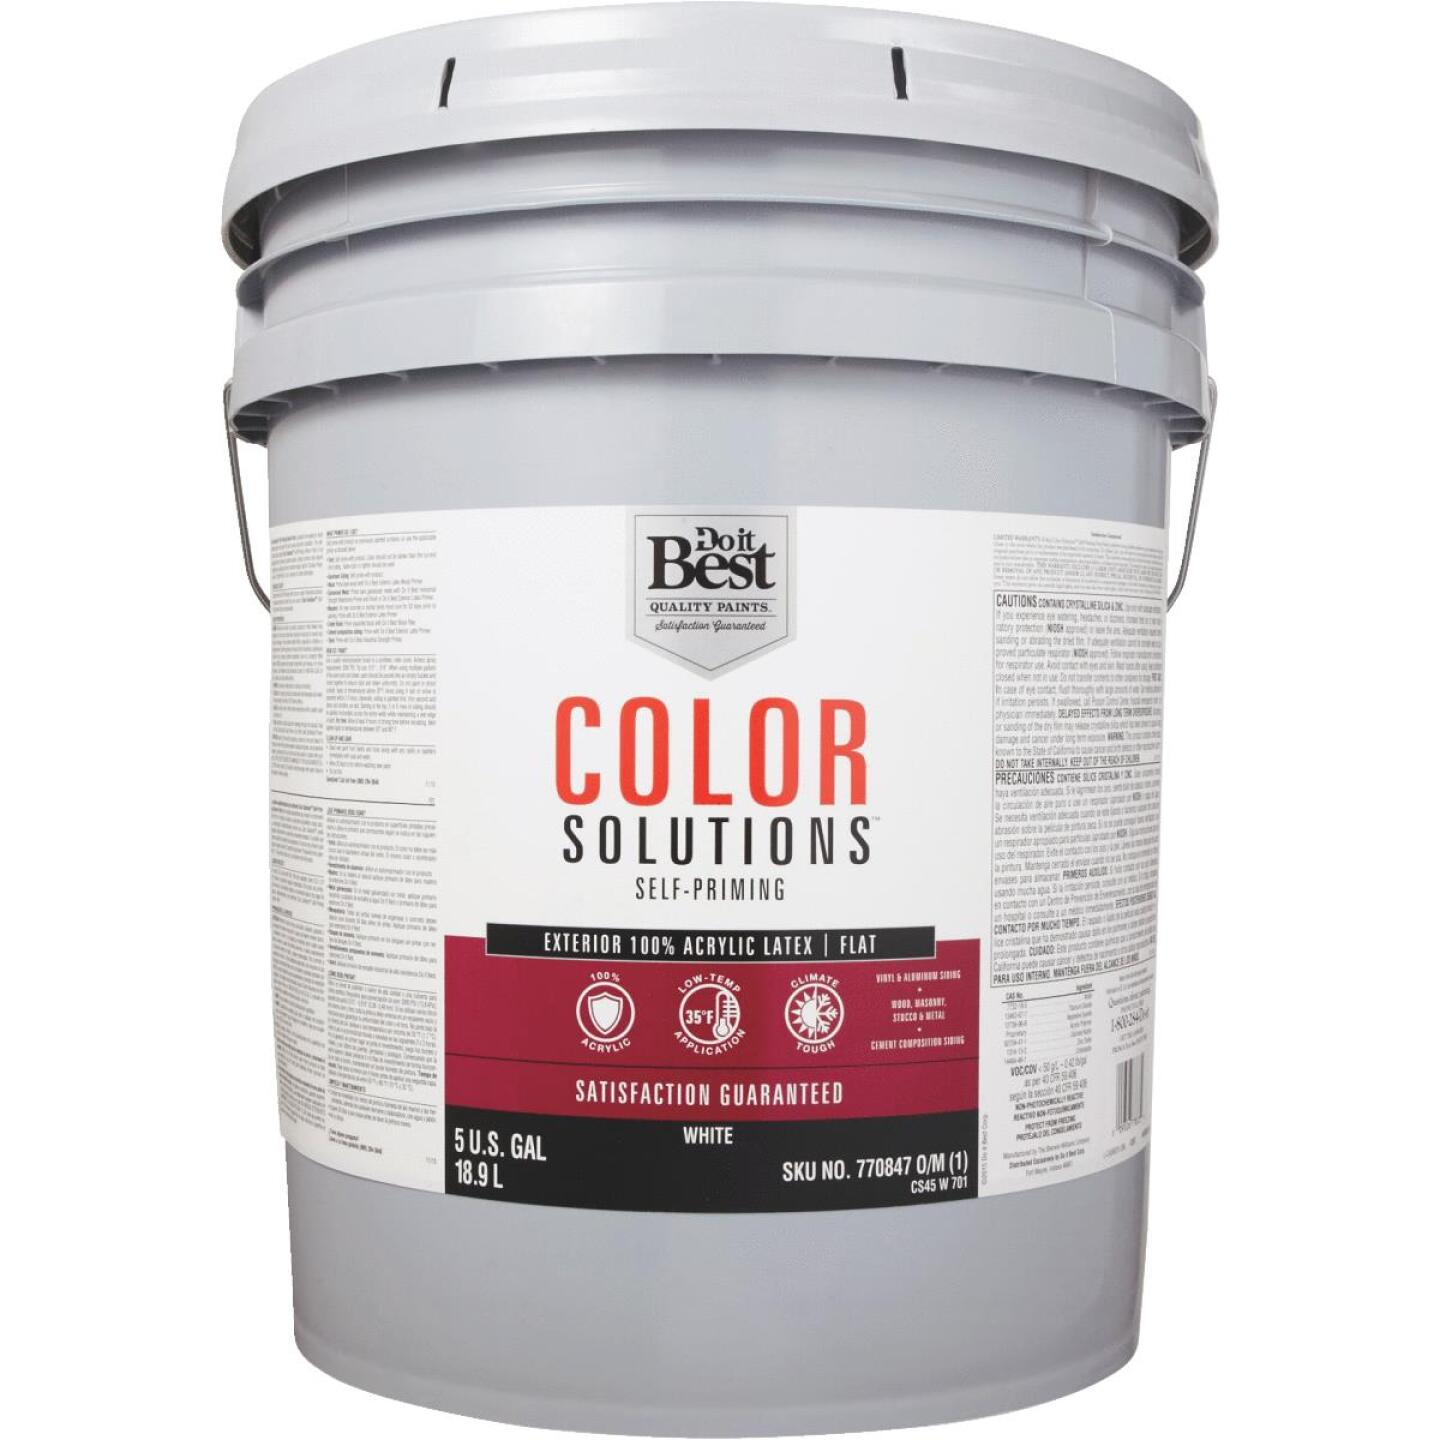 Do it Best Color Solutions 100% Acrylic Latex Self-Priming Flat Exterior House Paint, White, 5 Gal. Image 2